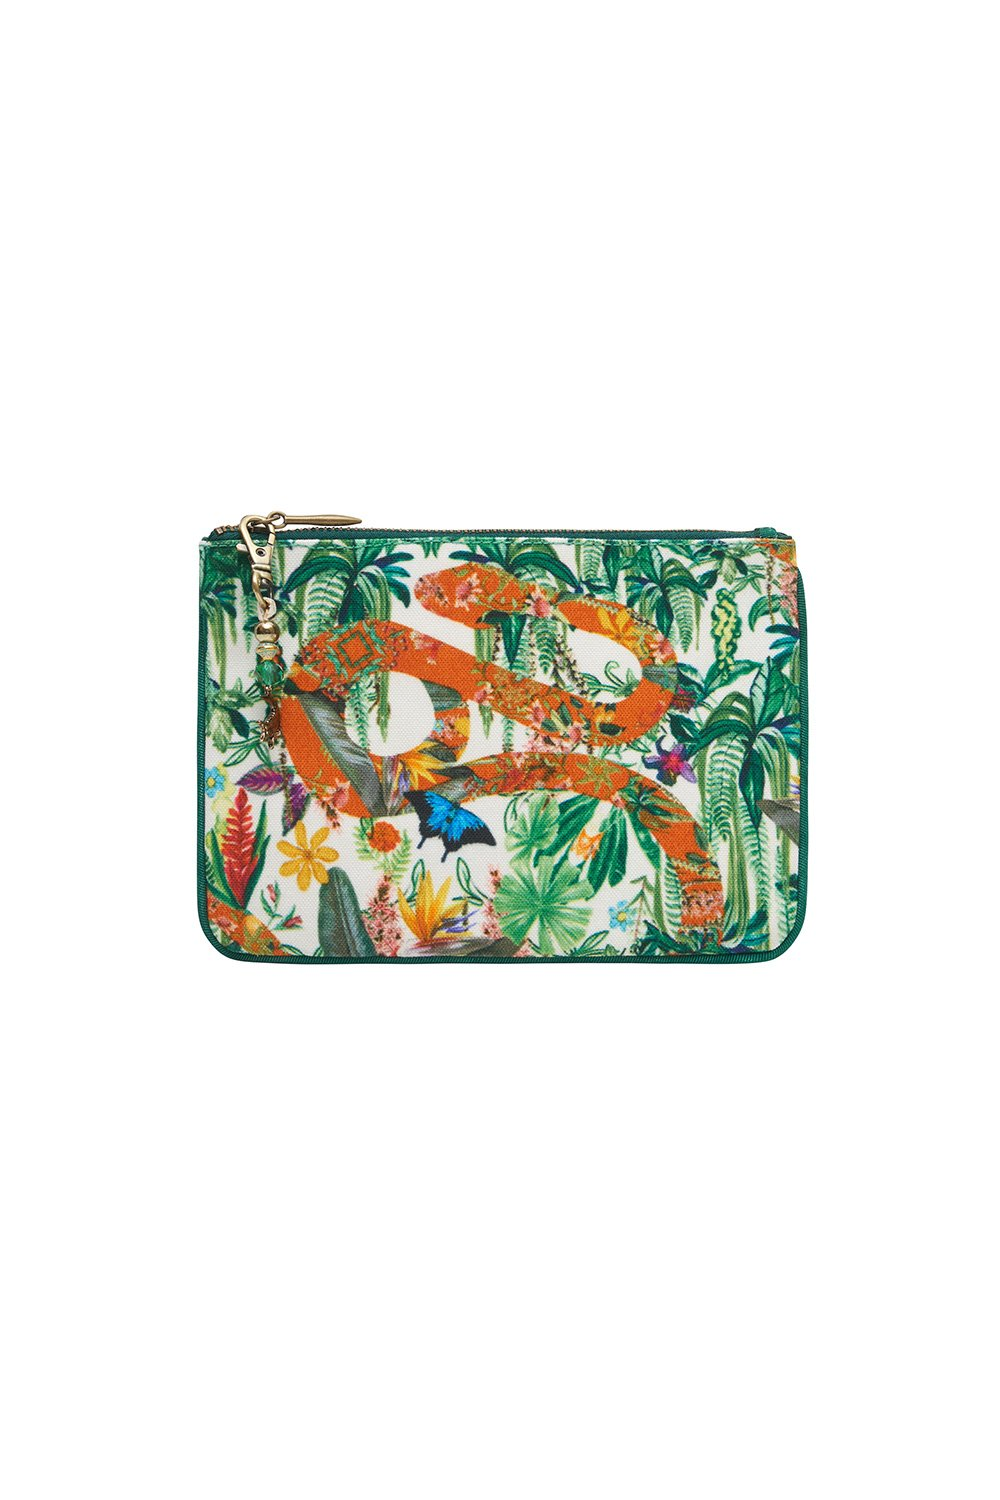 COIN AND PHONE PURSE DAINTREE DARLING